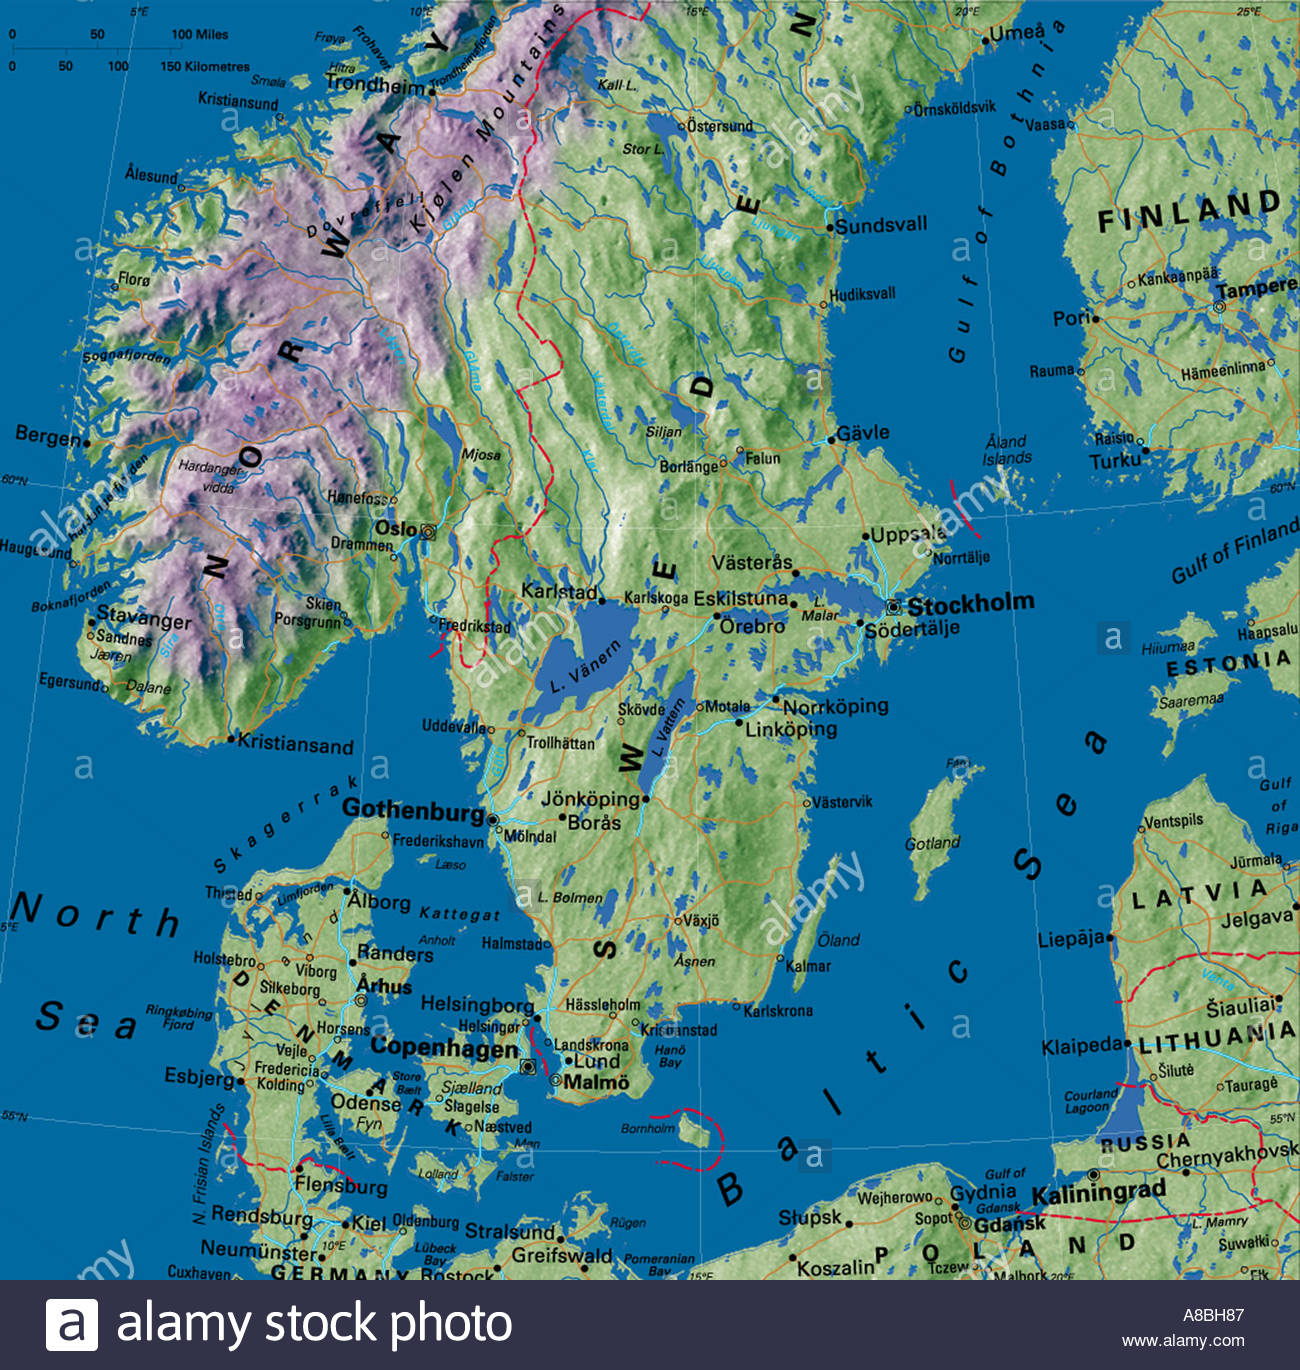 Map Maps Europe Denmark Sweden Norway Scandinavia Stock Photo - Sweden european map